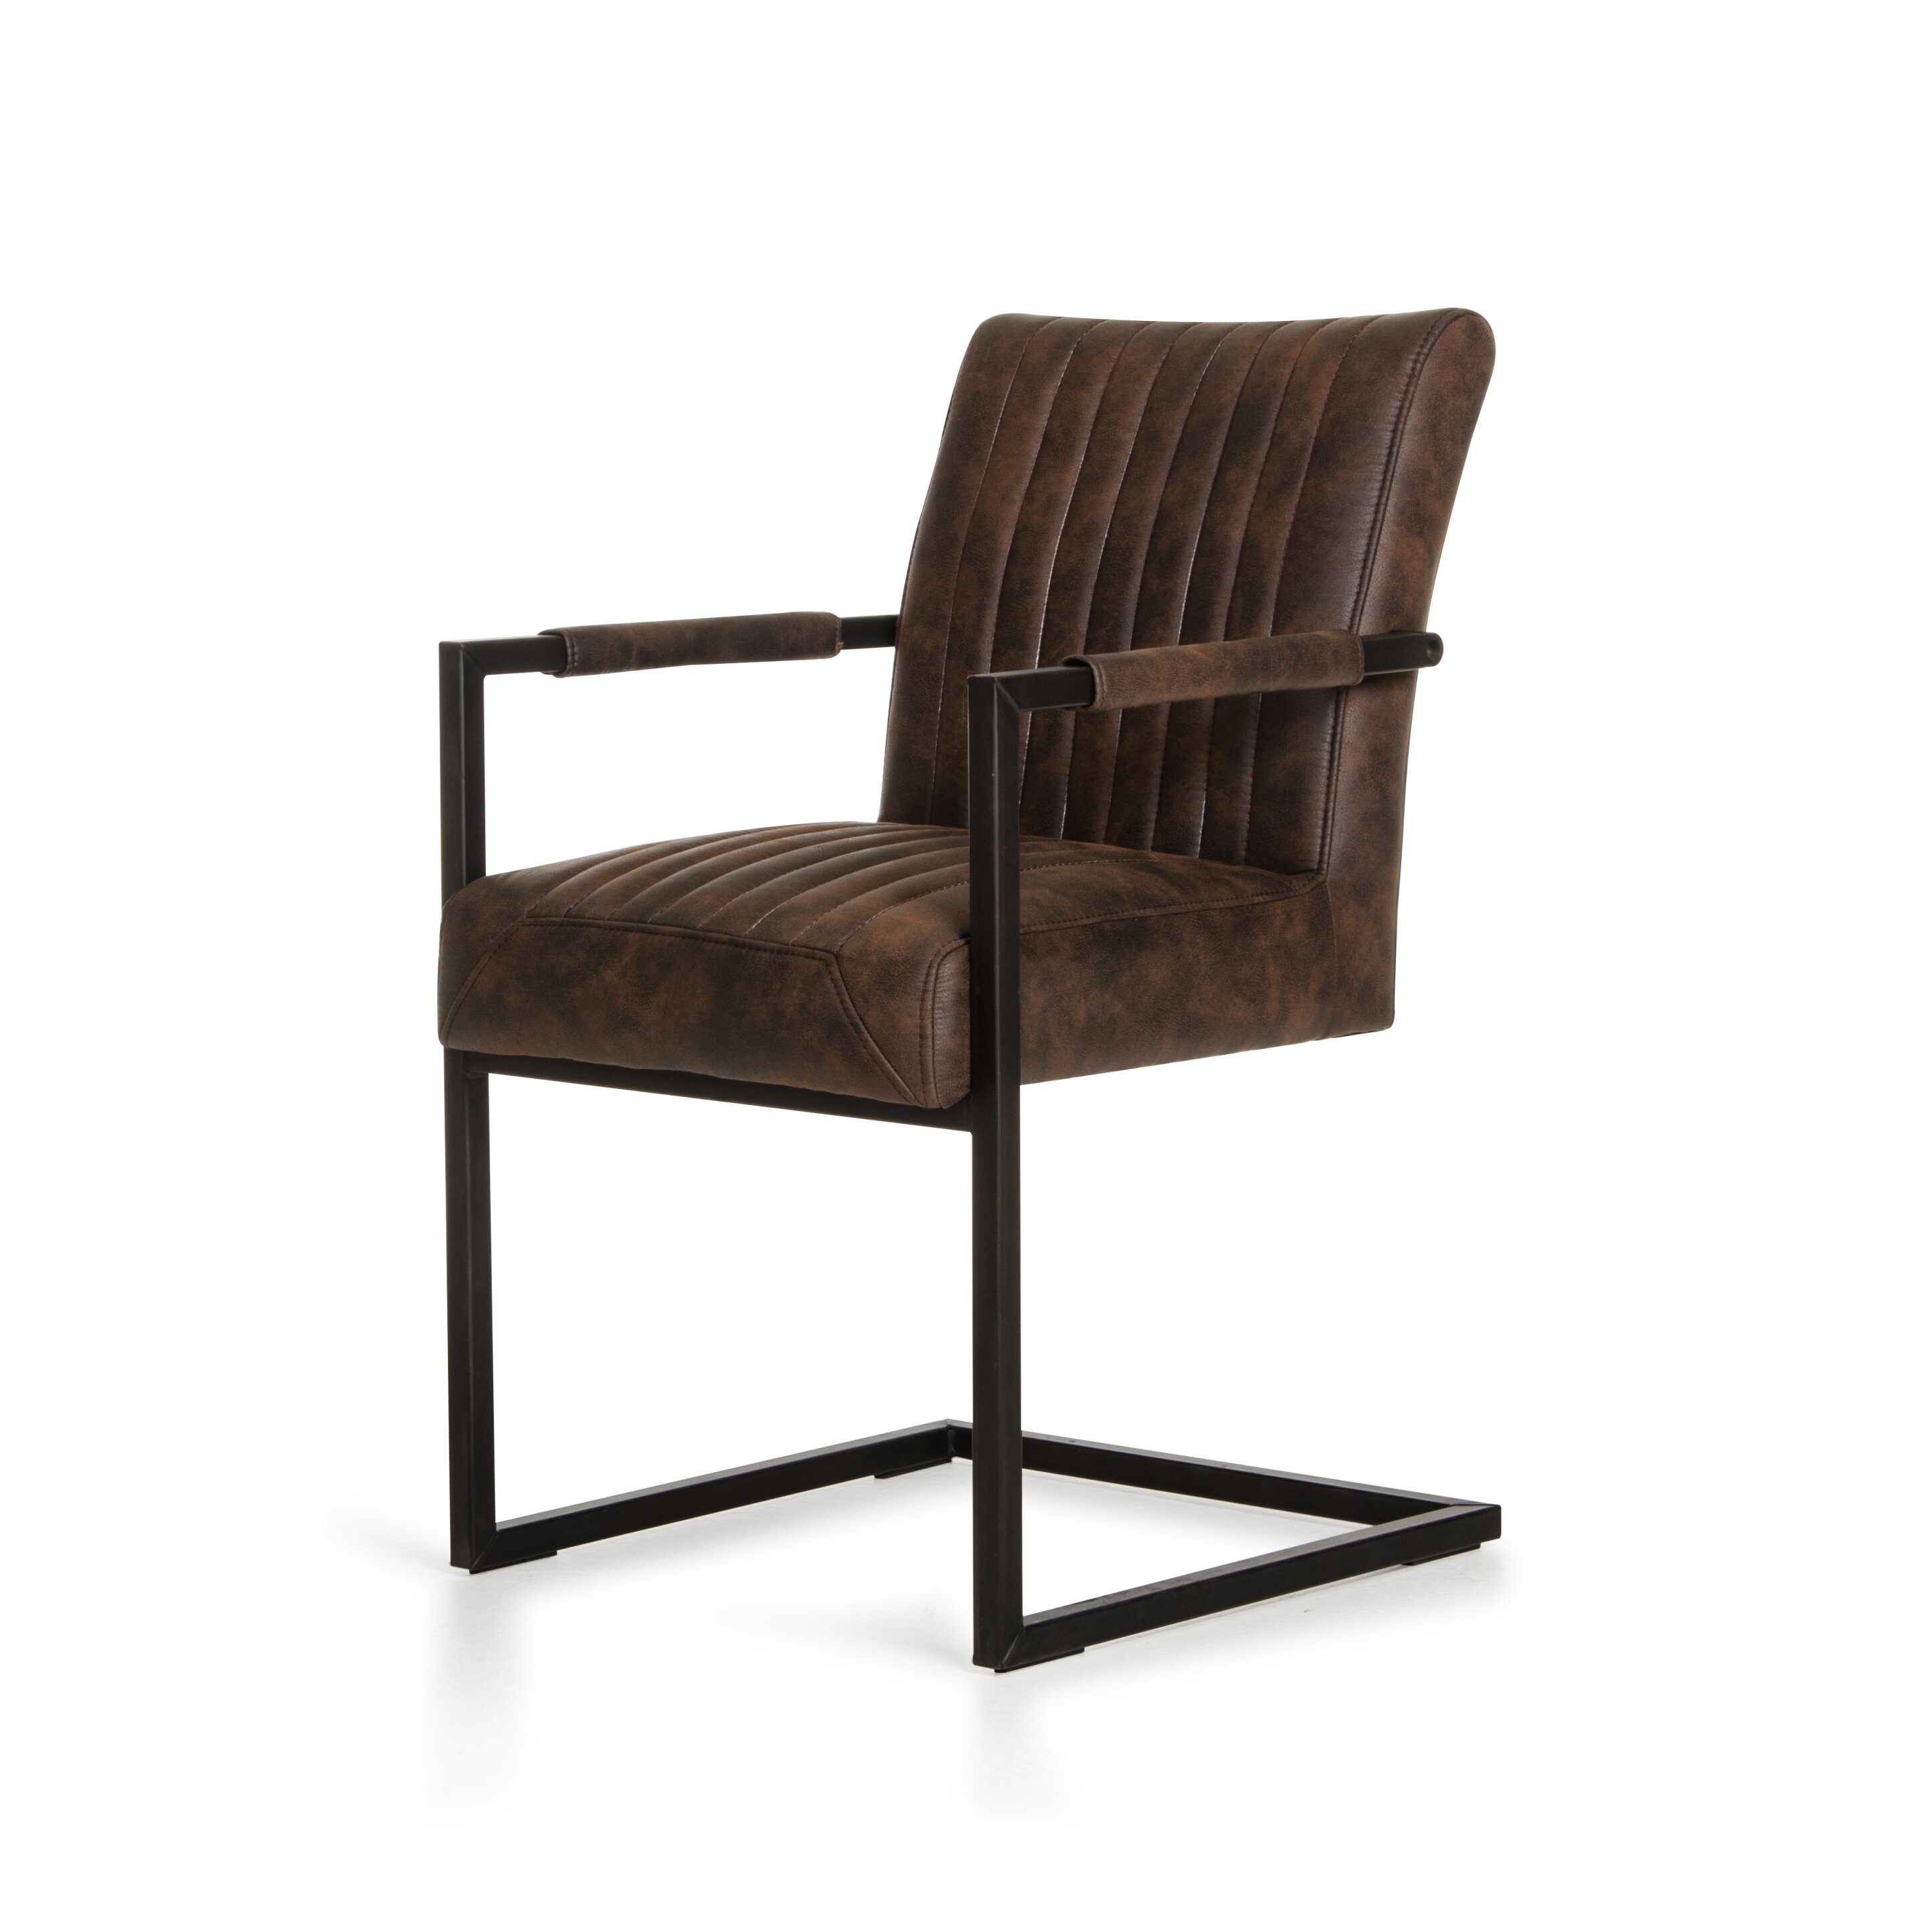 Laurel Foundry Modern Farmhouse Adainville Arm Chair Wayfair